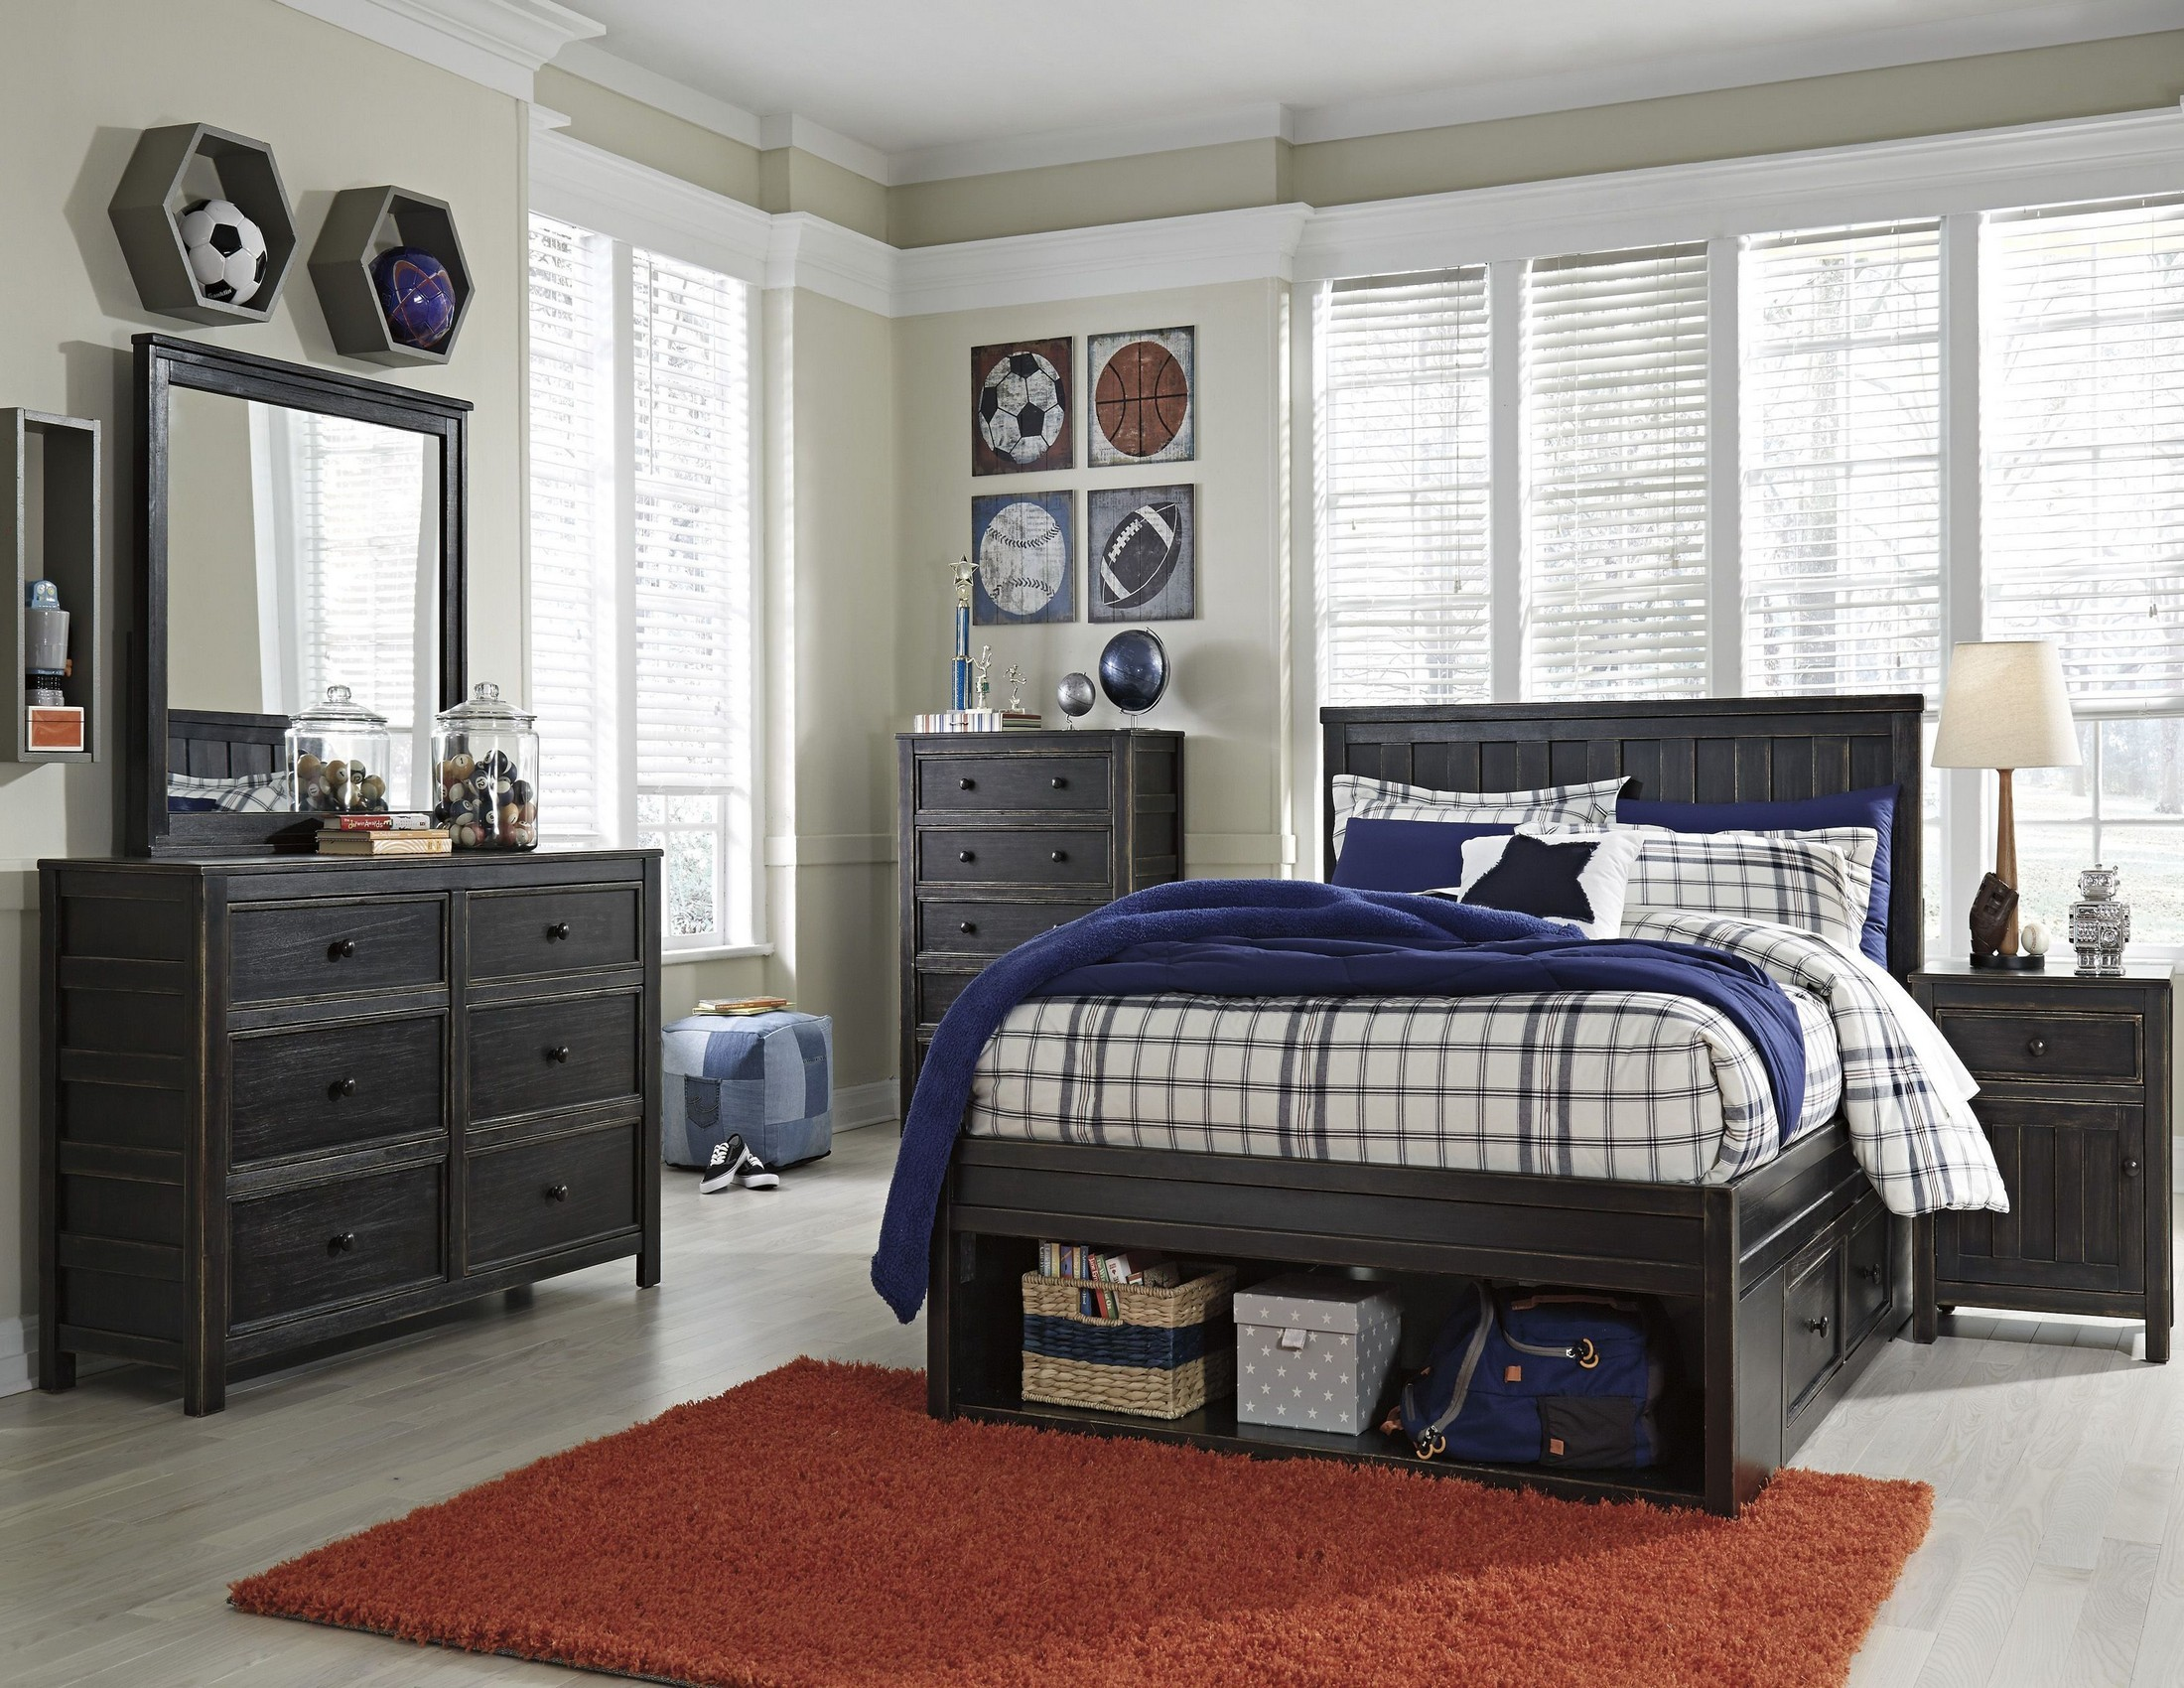 Jaysom black youth panel storage bedroom set from ashley coleman furniture for Youth storage bedroom furniture